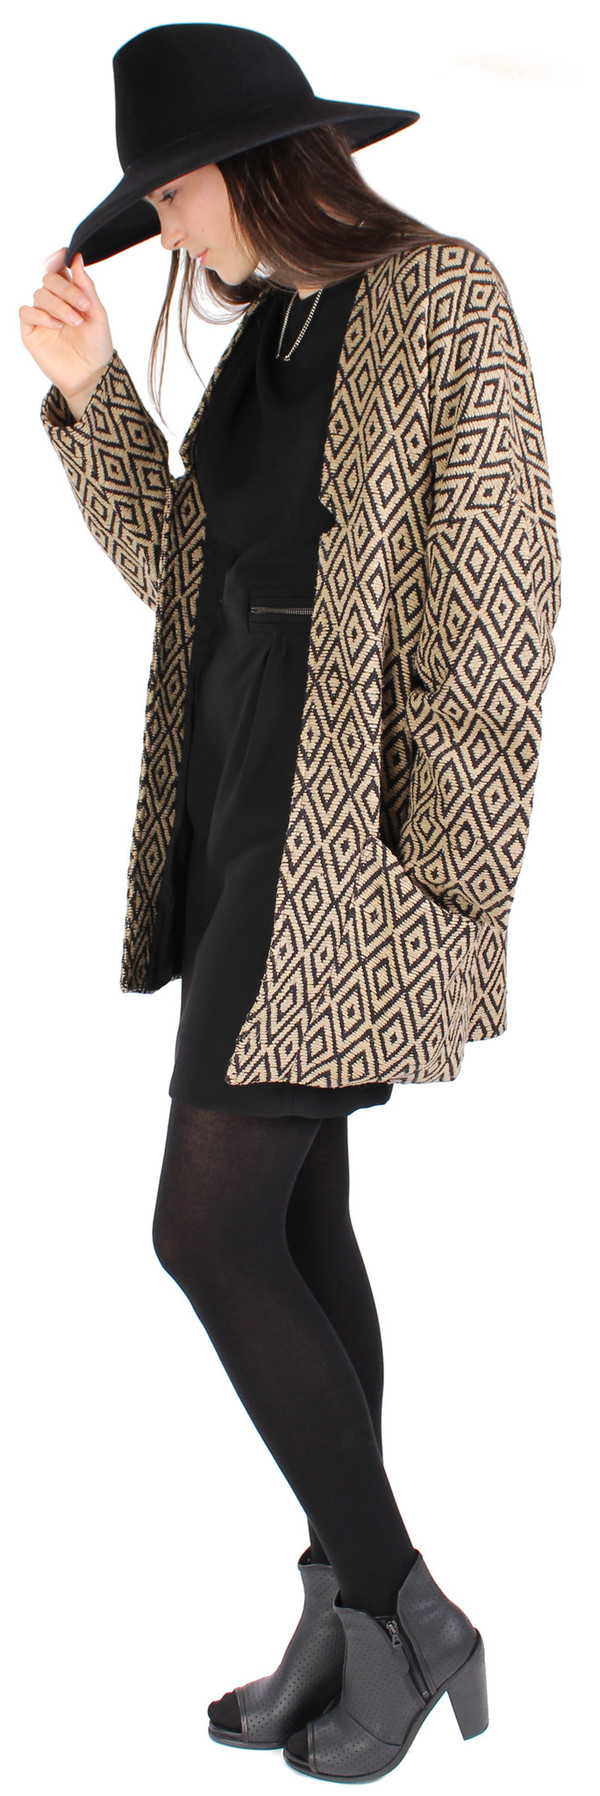 Hoss Intropia Diamond Print Coat